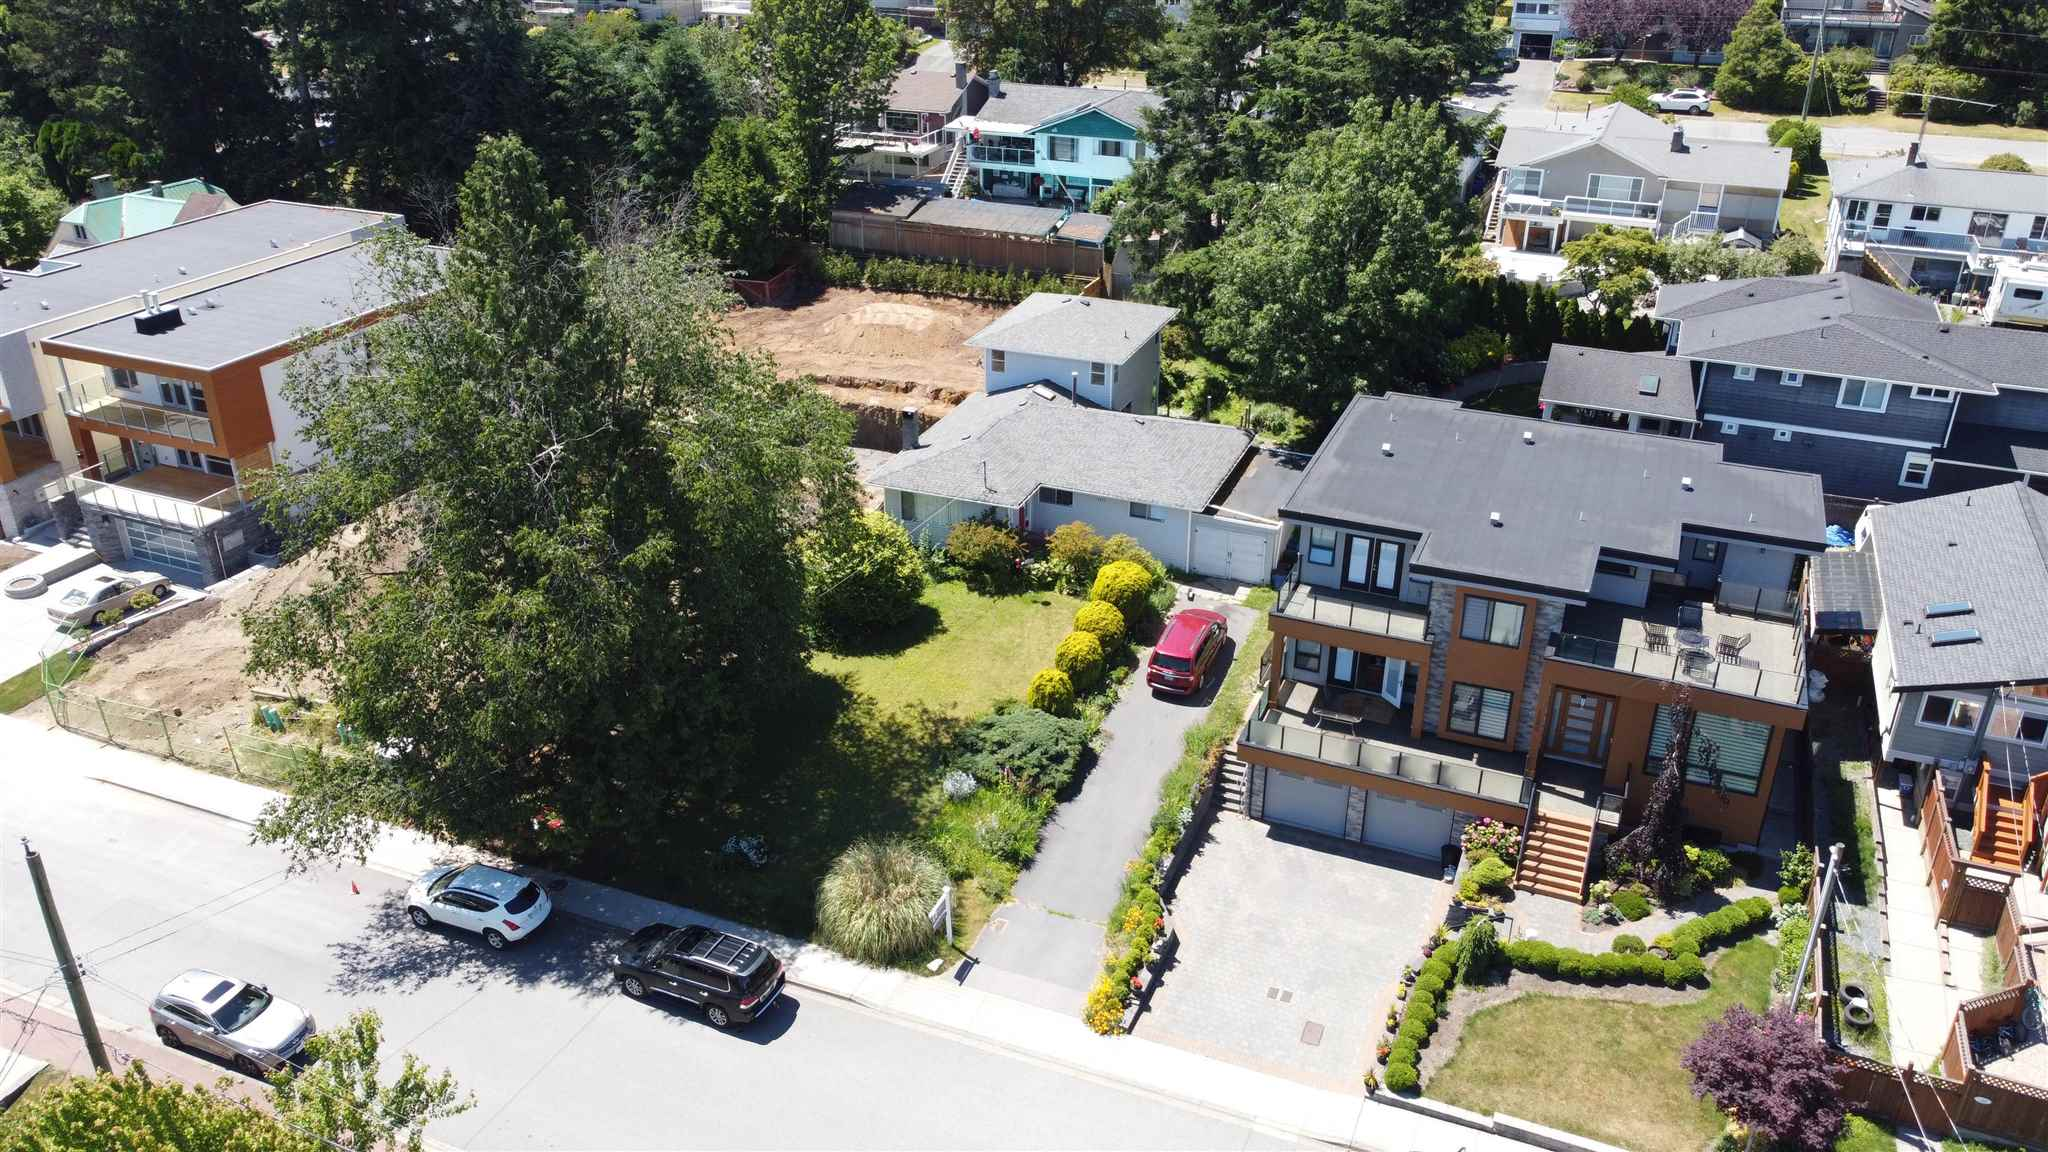 1275 KENT STREET - White Rock House/Single Family for sale, 4 Bedrooms (R2575494) - #2